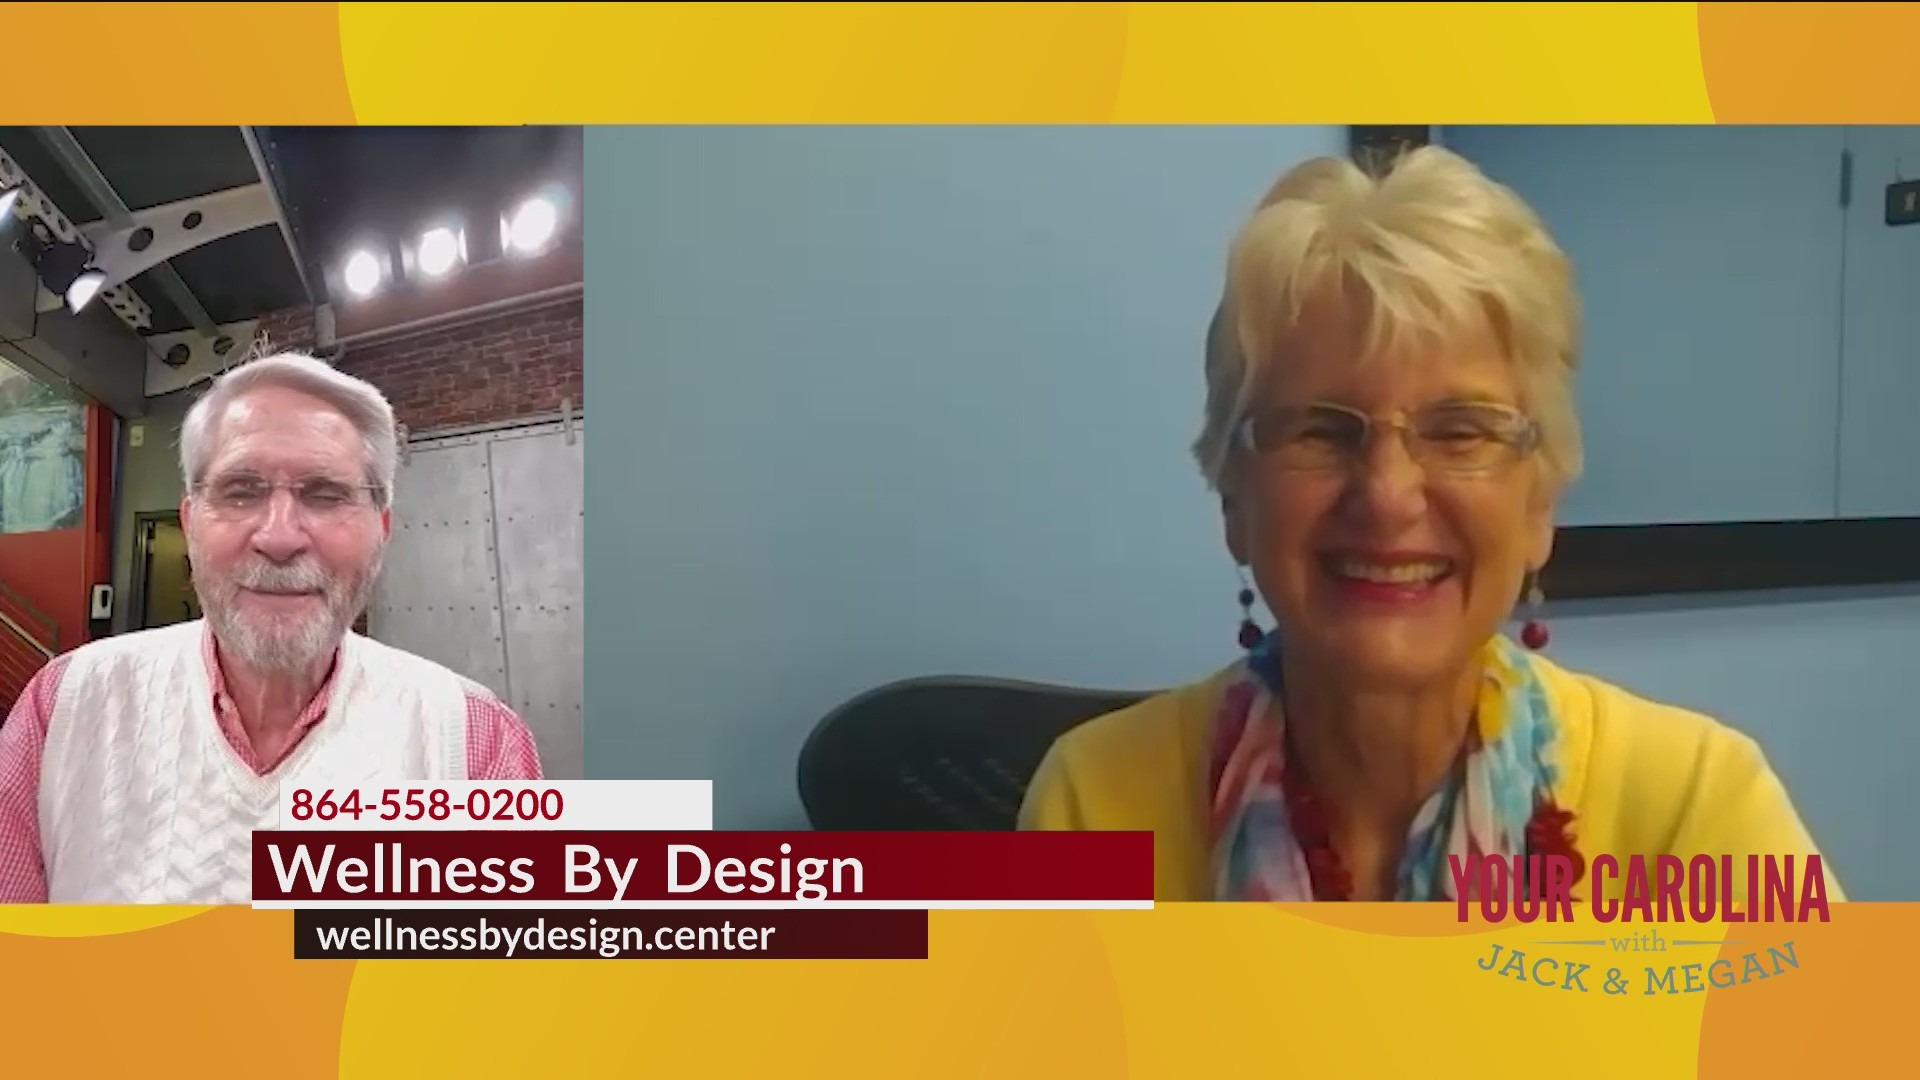 Wellness By Design - Restore Your Energy